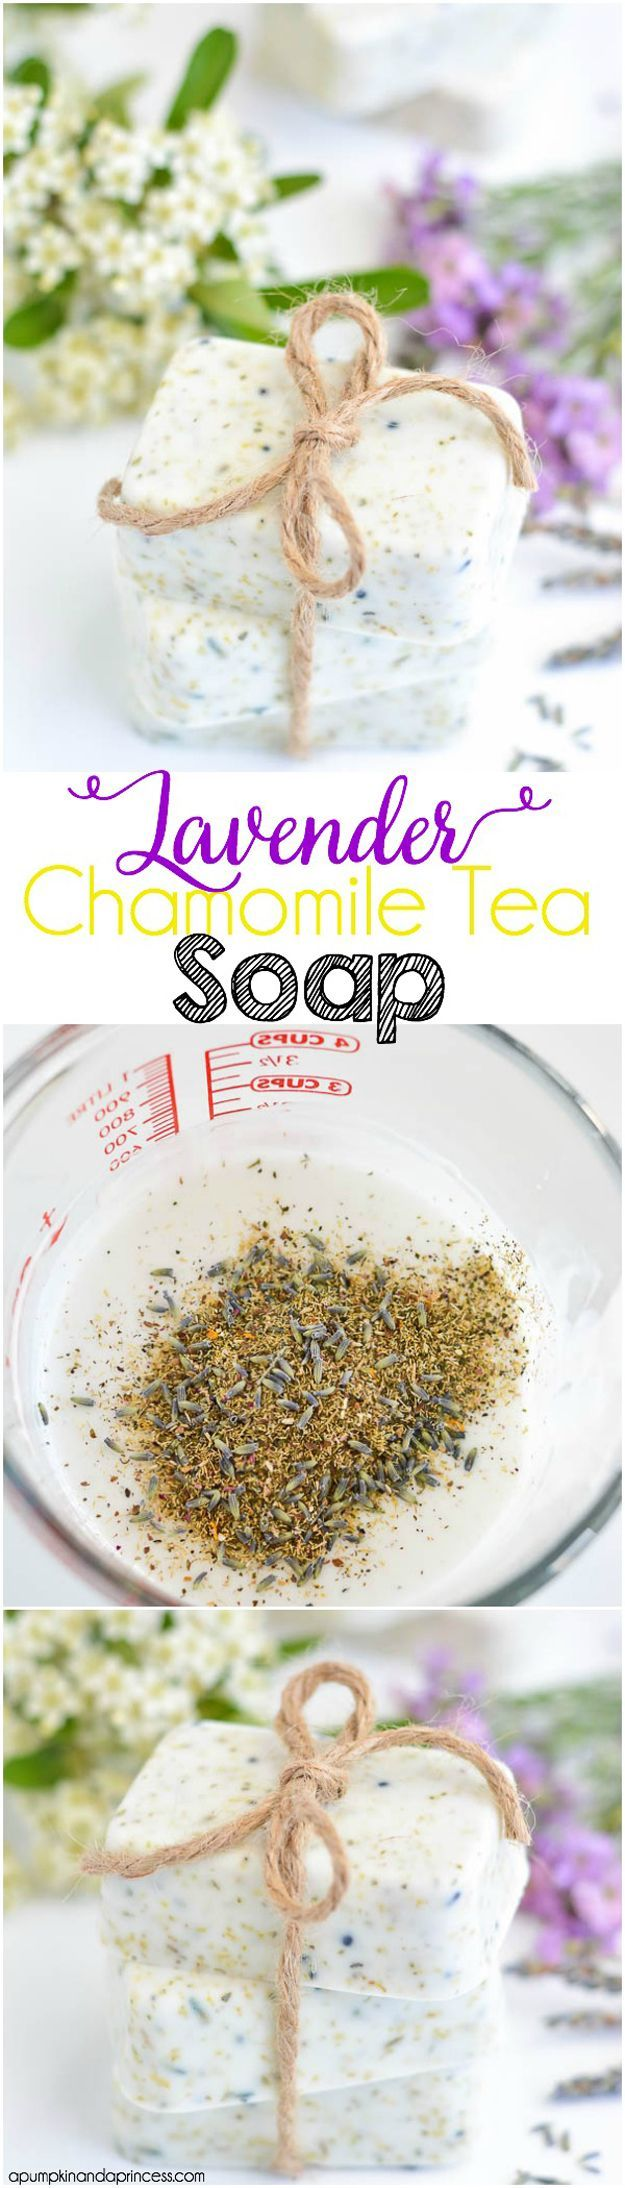 DIY Bar Soap: Lavender Chamomile Tea Soap | DIY Homemade Cool Mother's Day Ideas by DIY Ready at  http://diyready.com/diy-gifts-mothers-day-ideas/